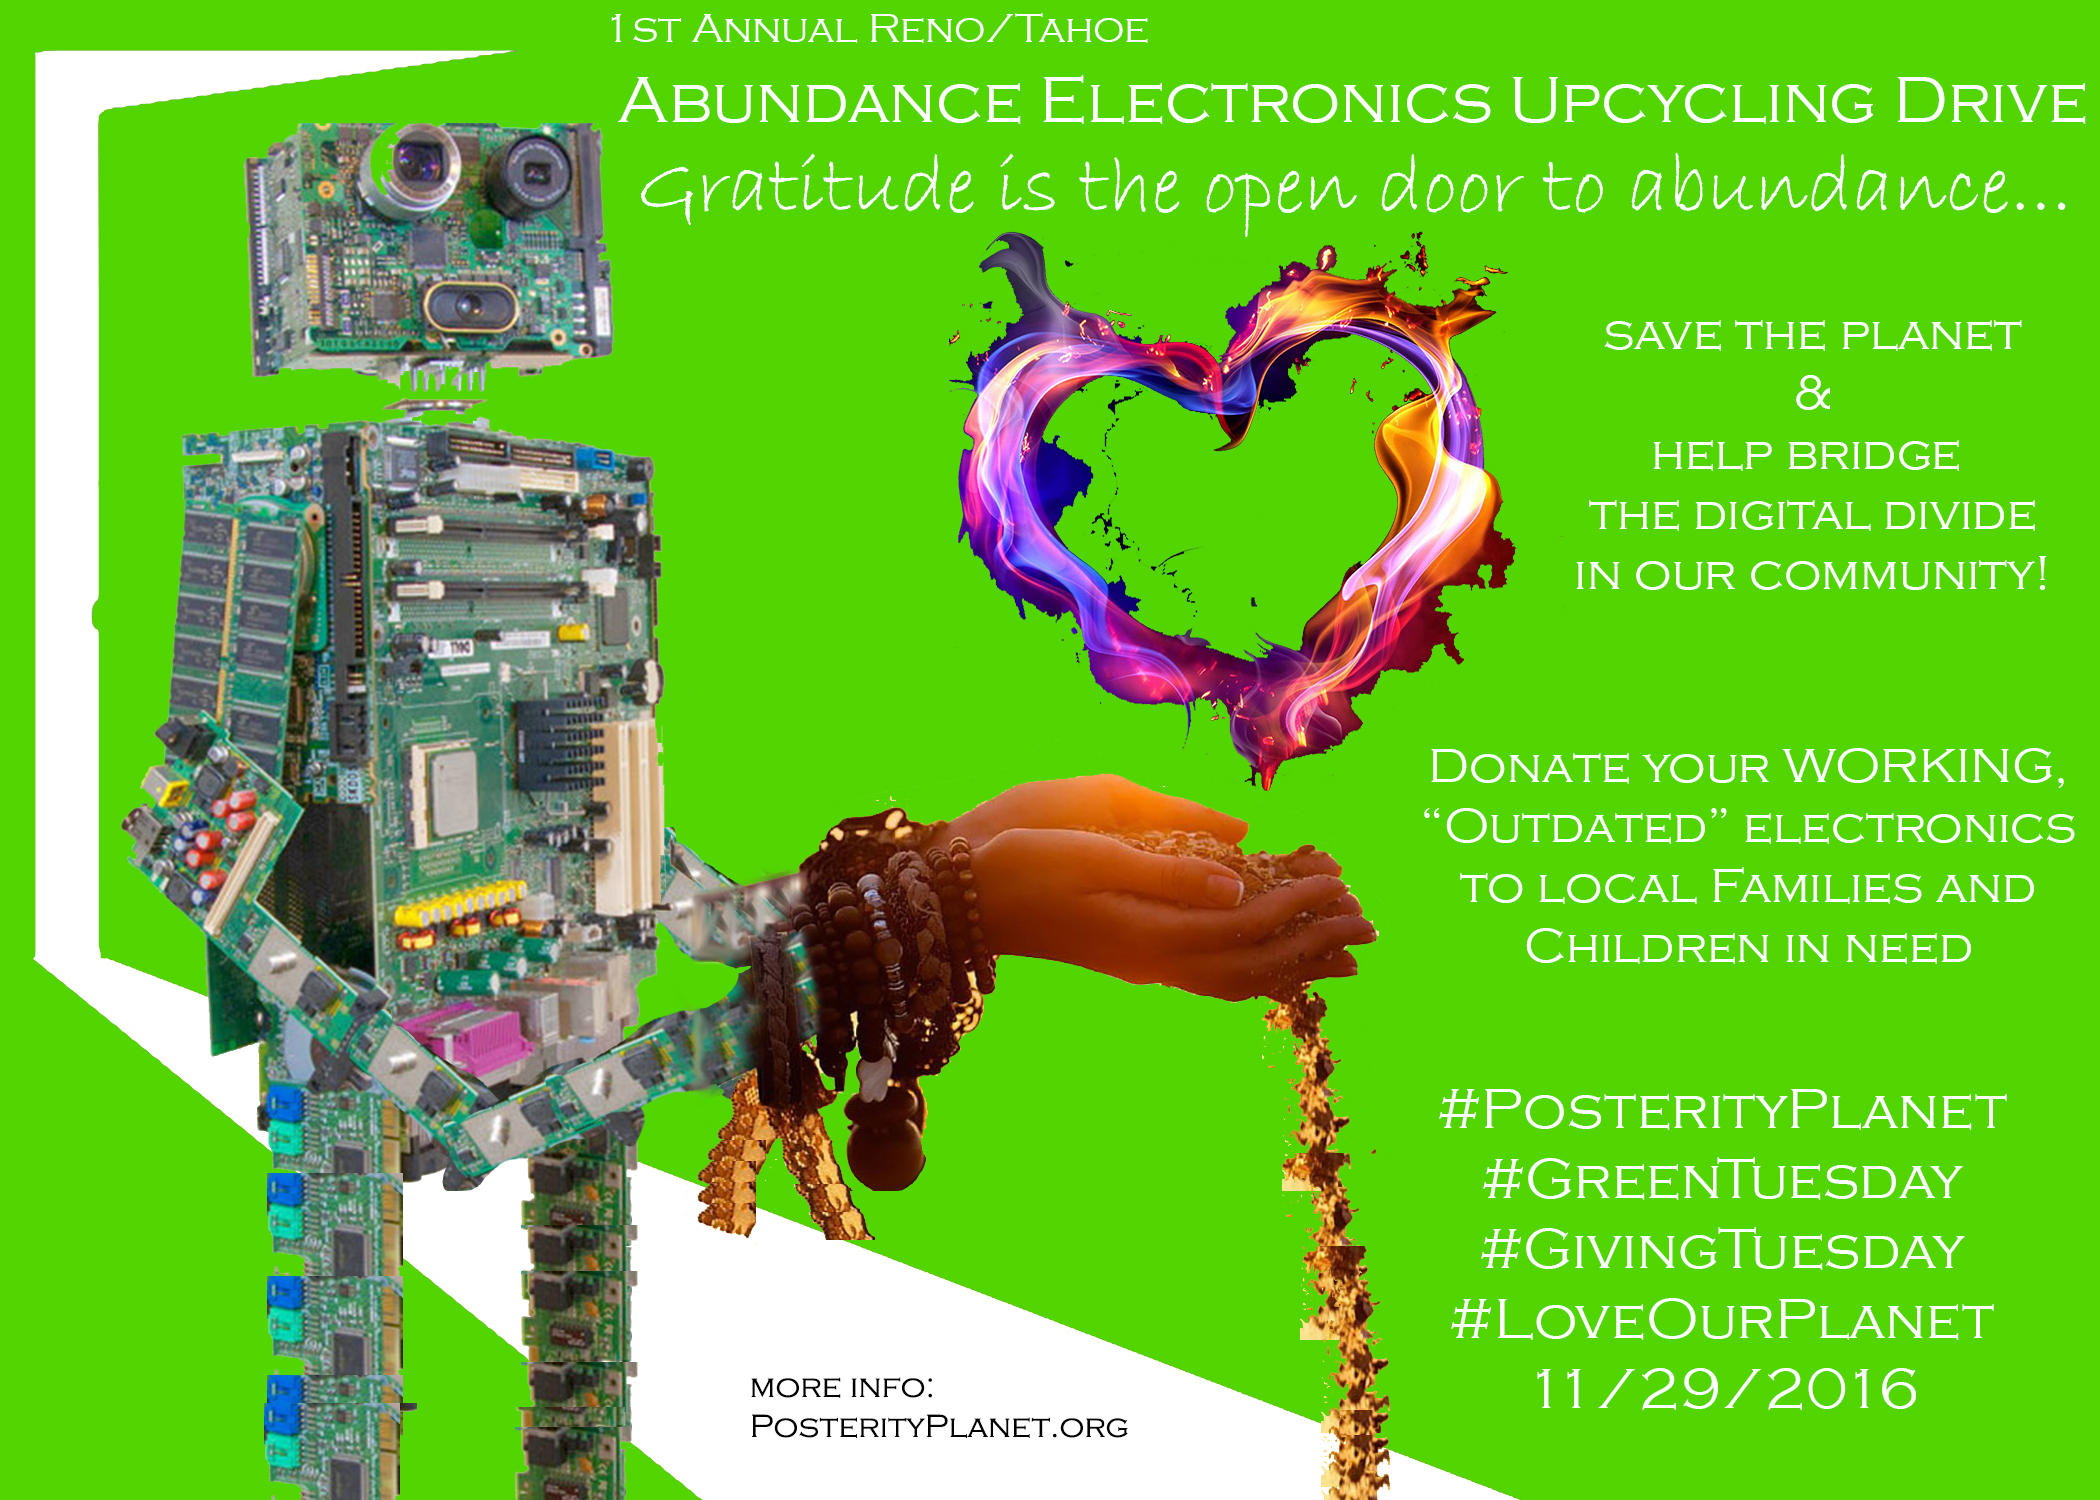 Abundance Electronics Upcycling Event Reno 2016